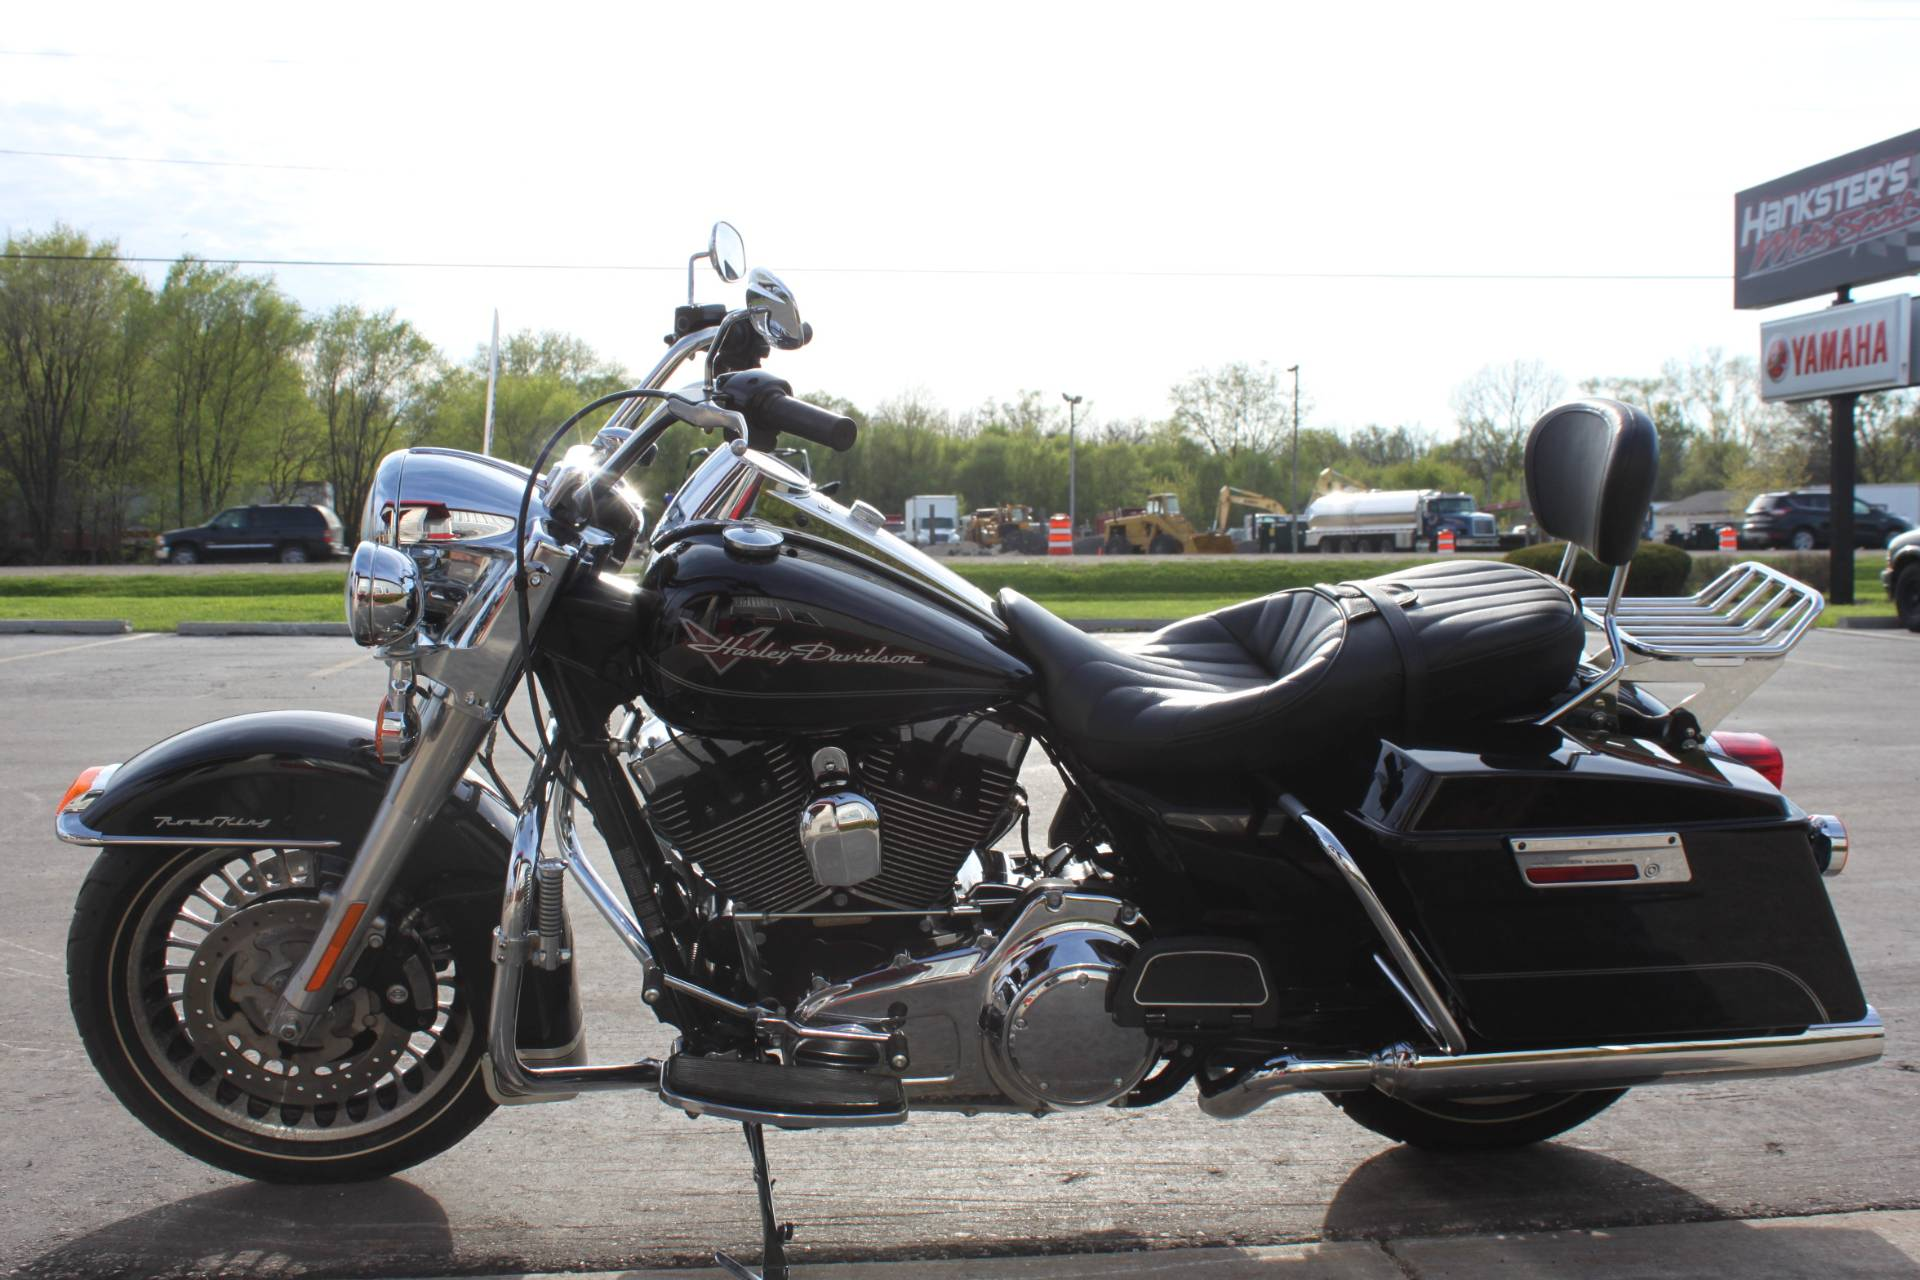 2009 Harley-Davidson Road King 5